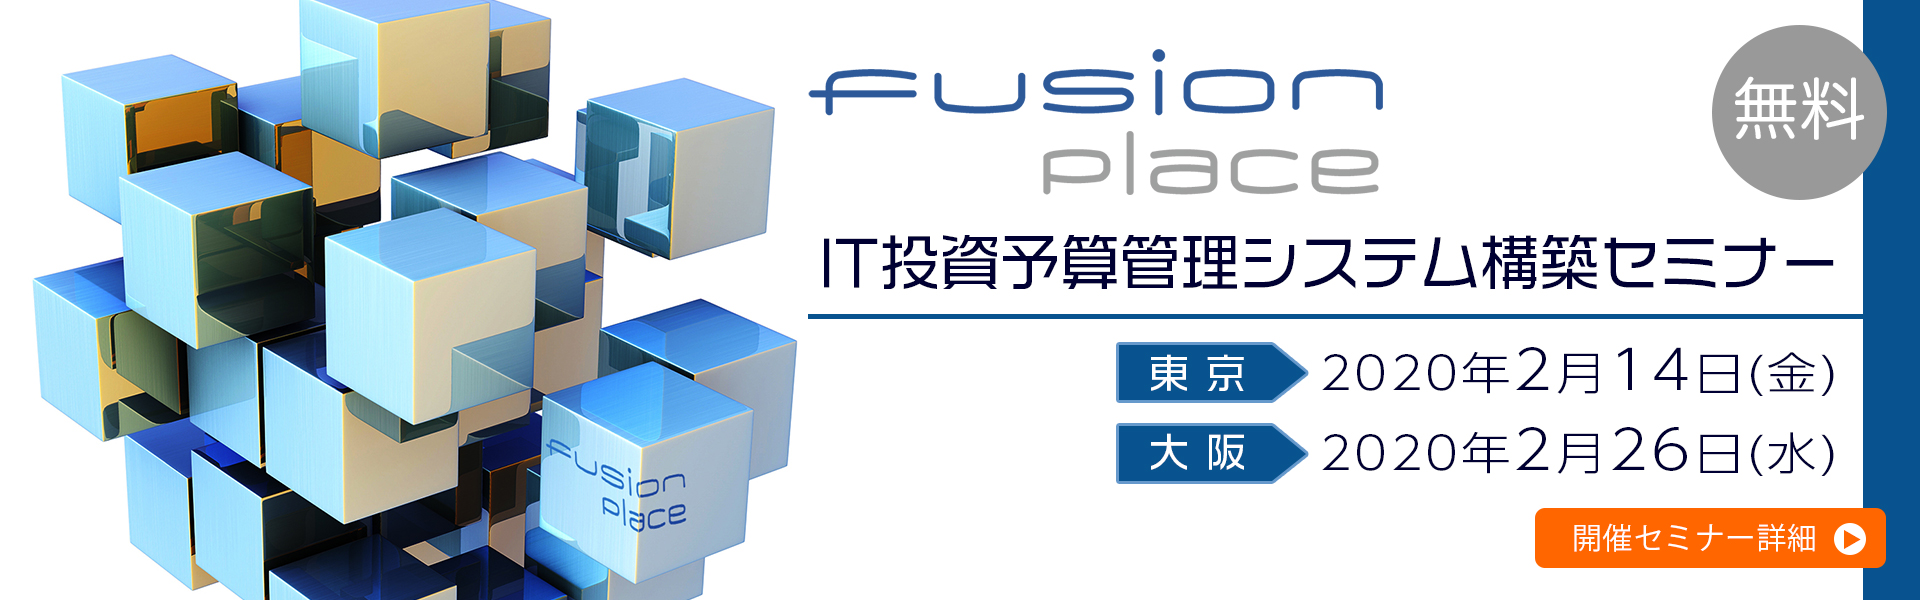 fusion_place day 2019